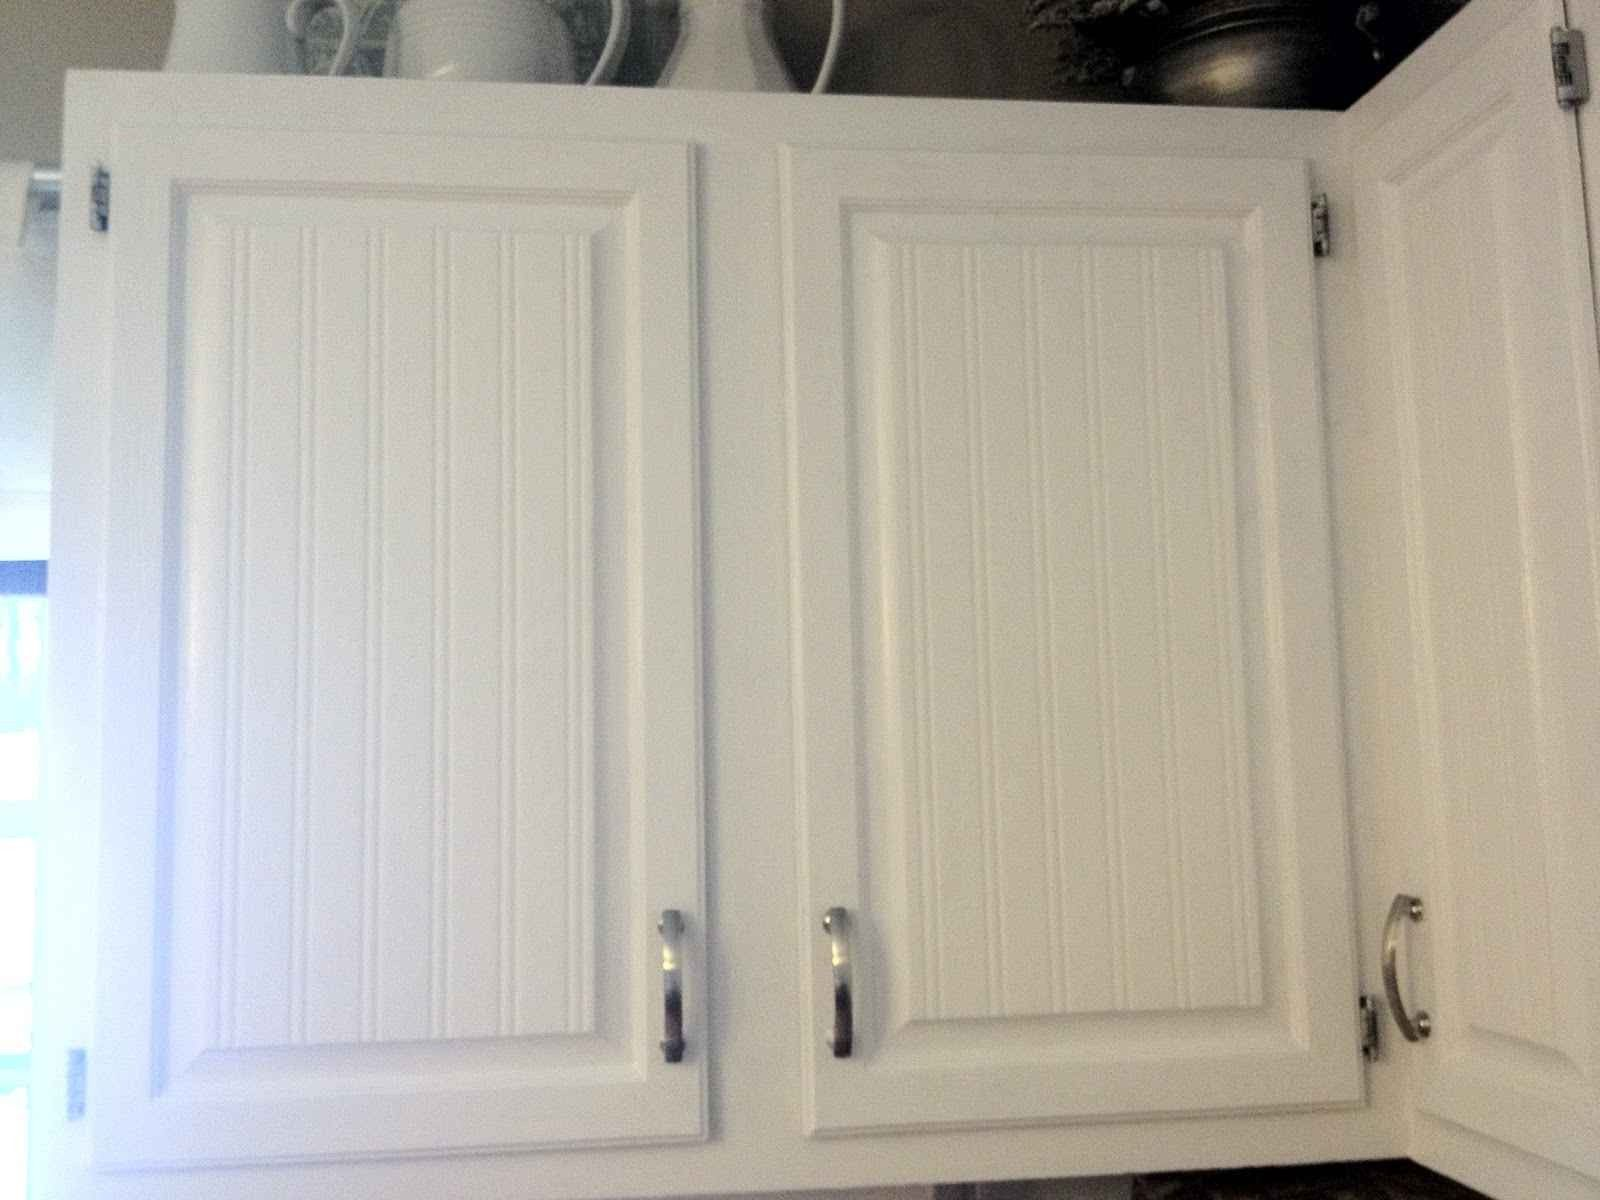 20 White Beadboard Cabinet Doors Apartment Kitchen Cabinet Ideas Check More At Ht Wallpaper Bathroom Cabinets Beadboard Wallpaper Beadboard Kitchen Cabinets